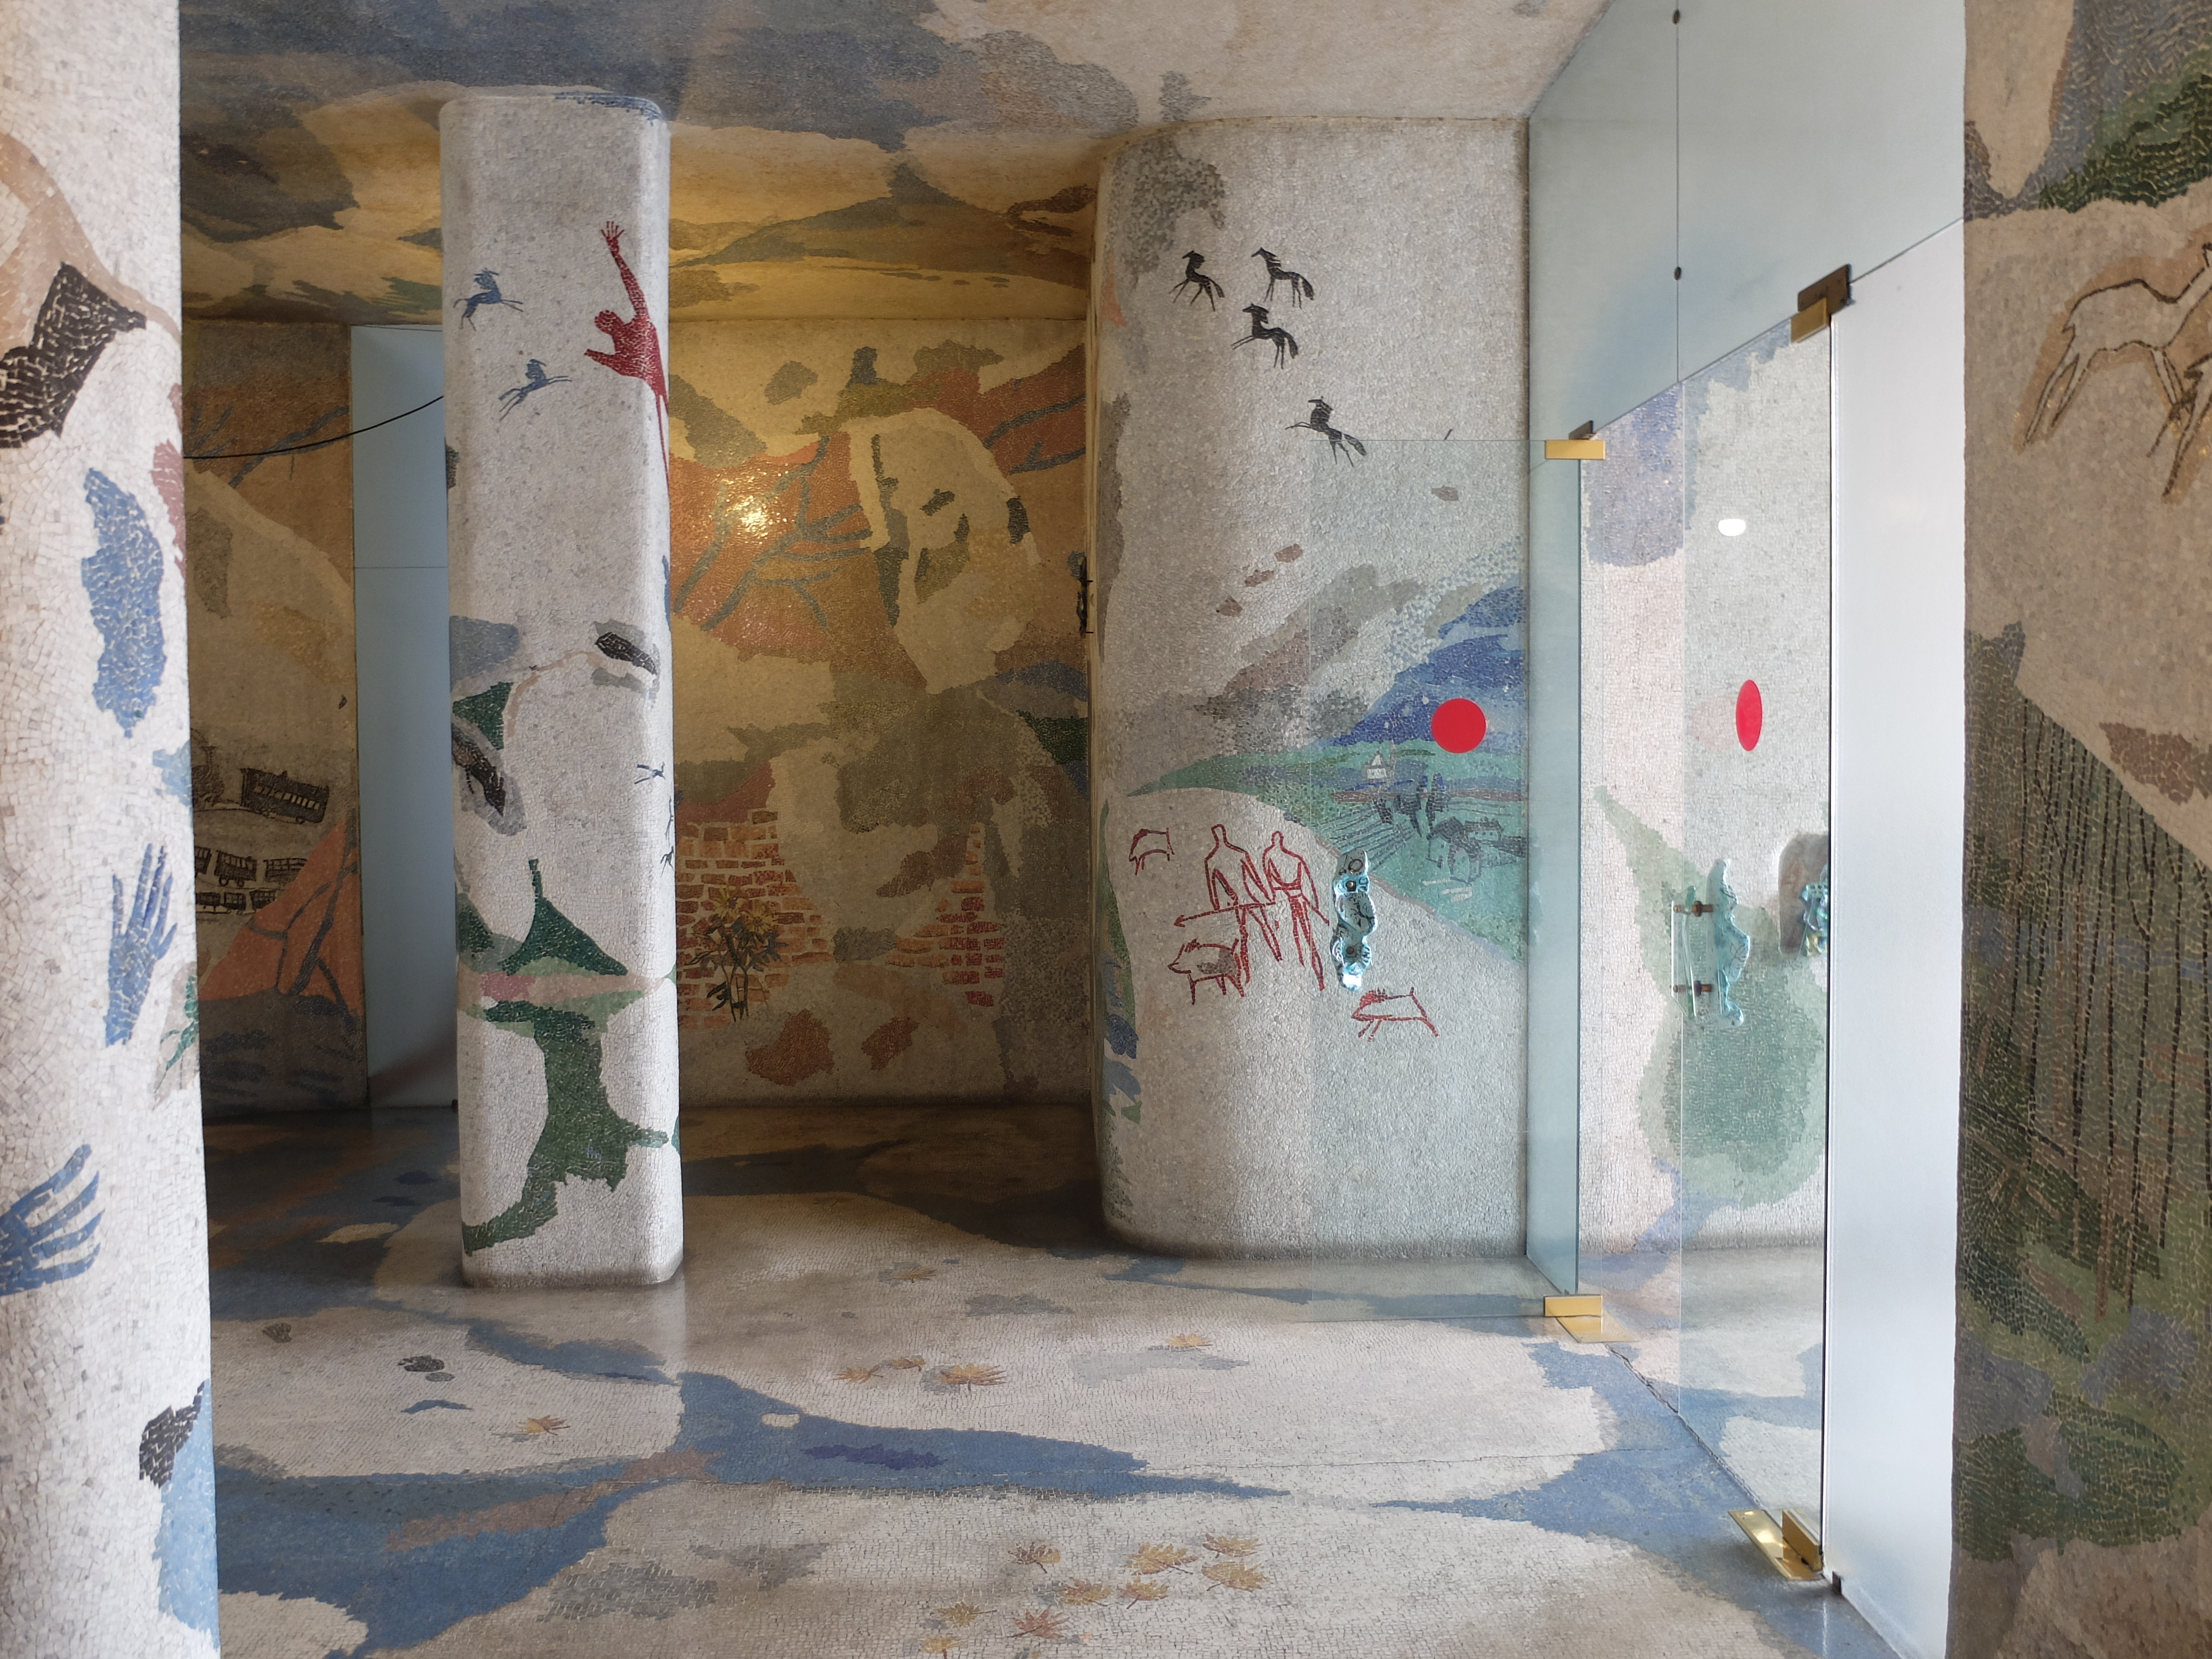 Photo of a lobby foyer with walls, columns, floors, and ceilings mosaiced with abstract shapes and hand prints and animals.